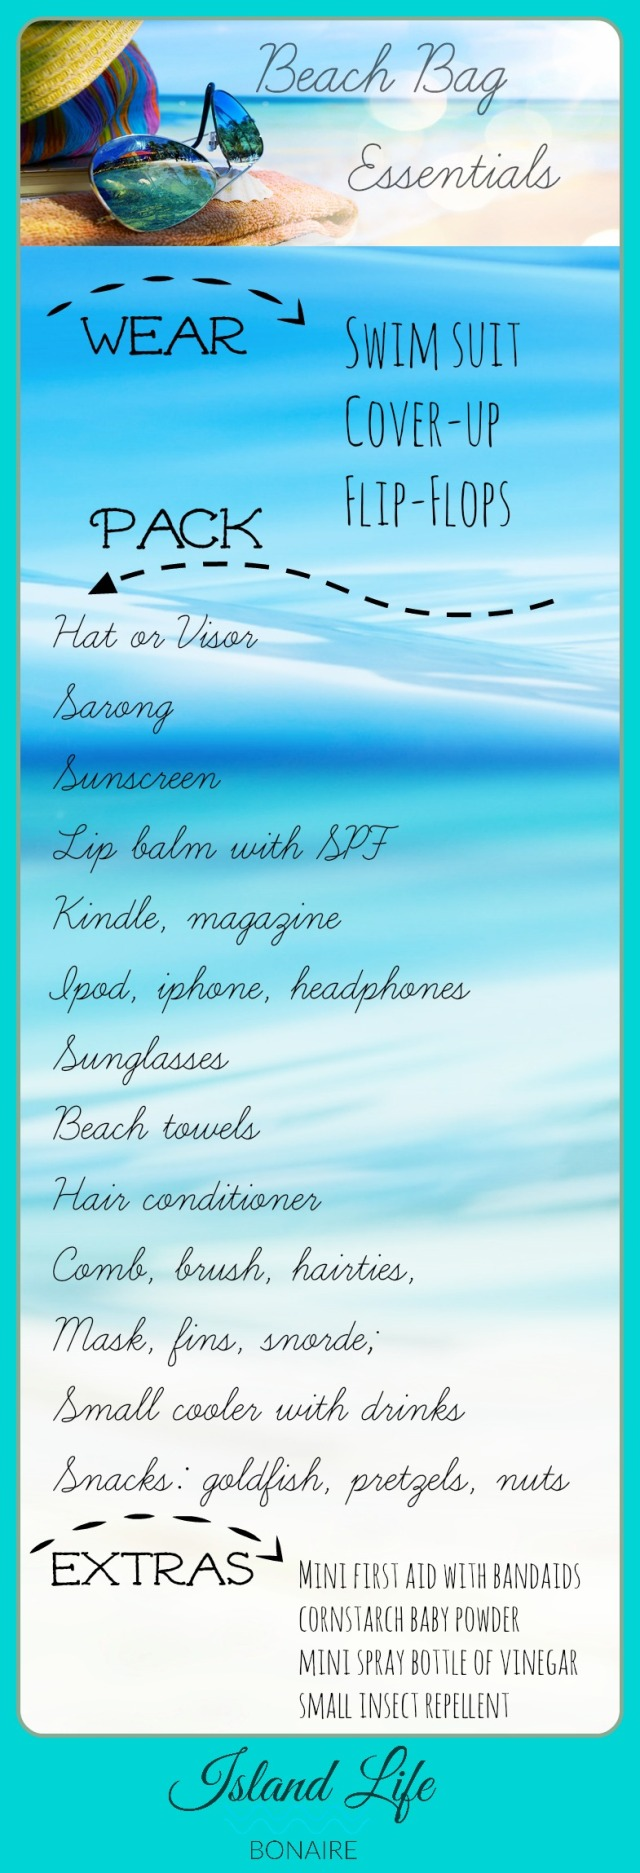 Beach Bag Checklist